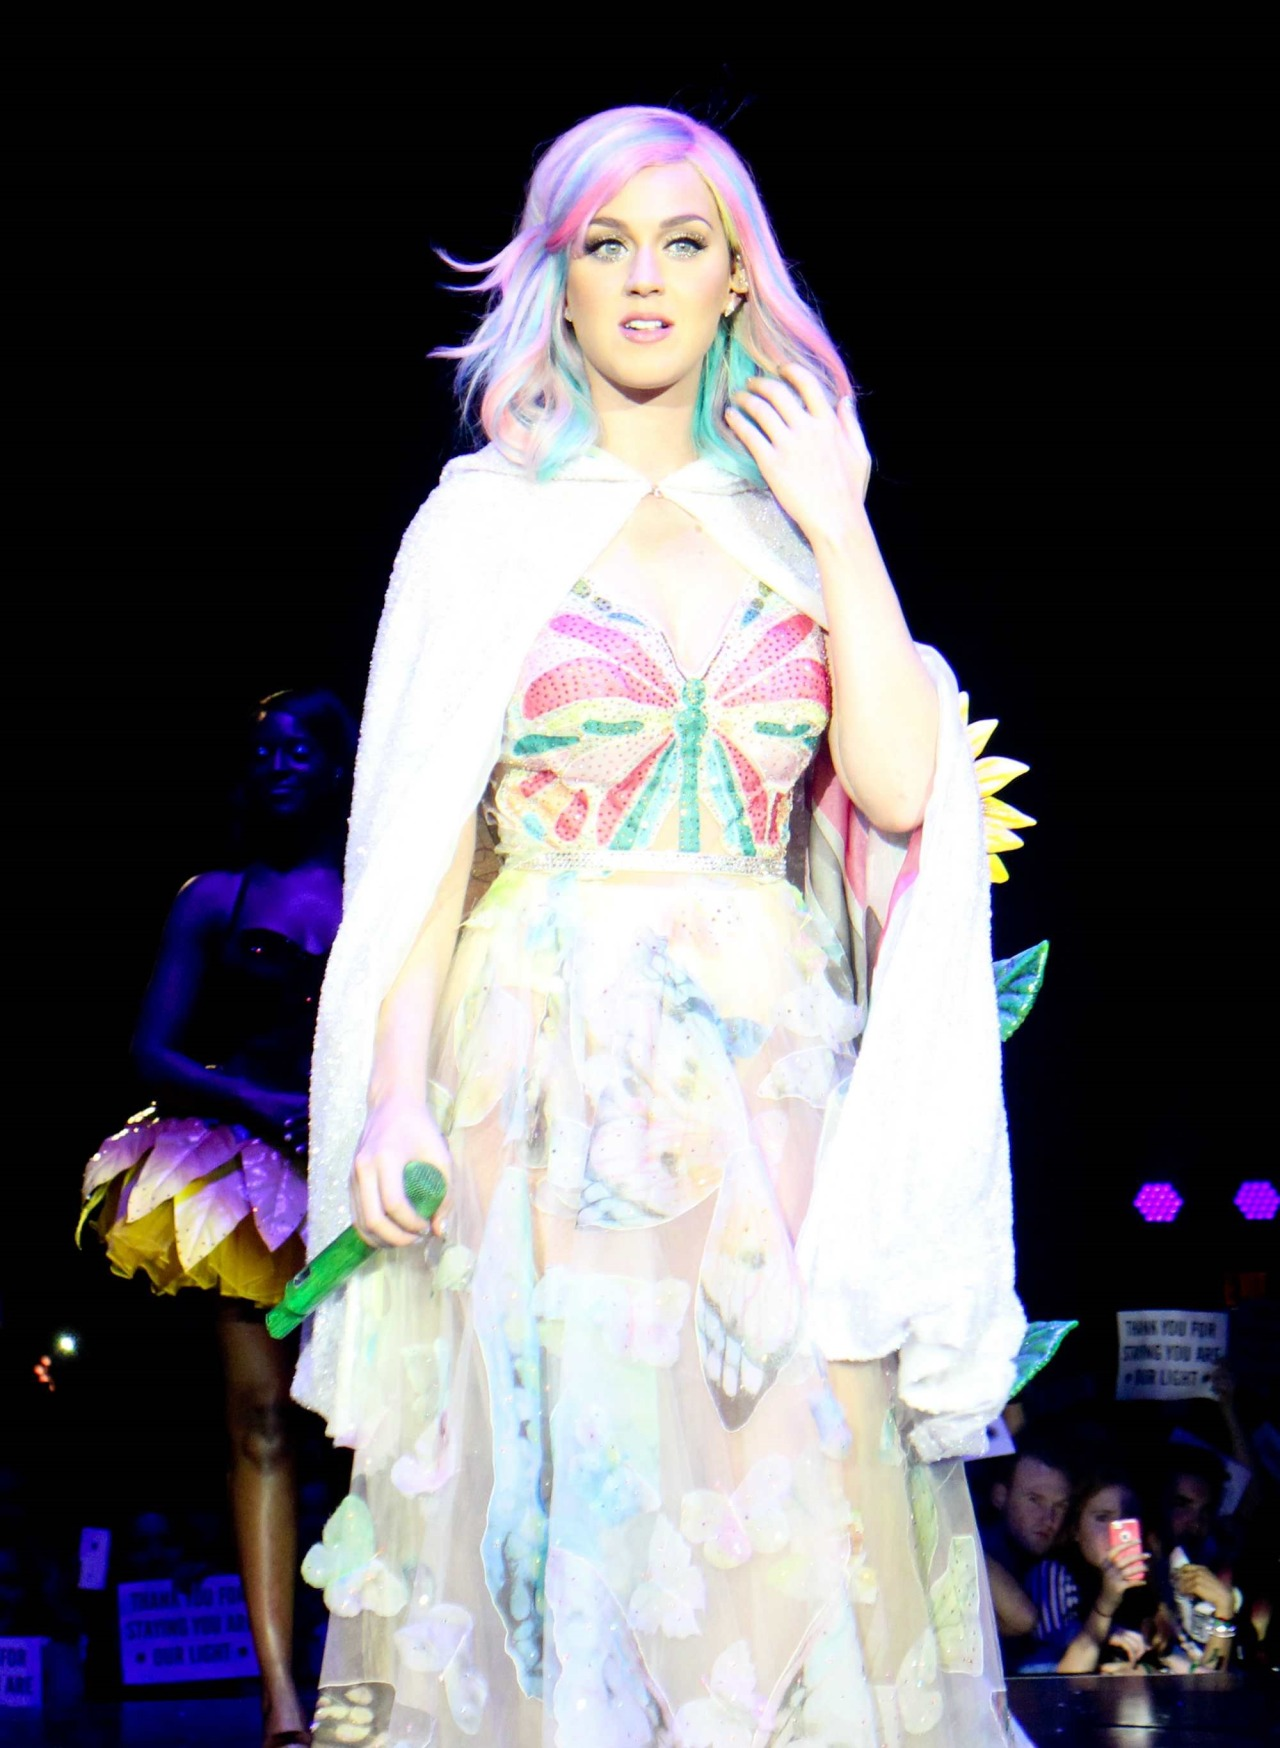 Katy Perry >> The Prismatic World Tour Tumblr_n58y1pycJY1qc70kwo7_1280